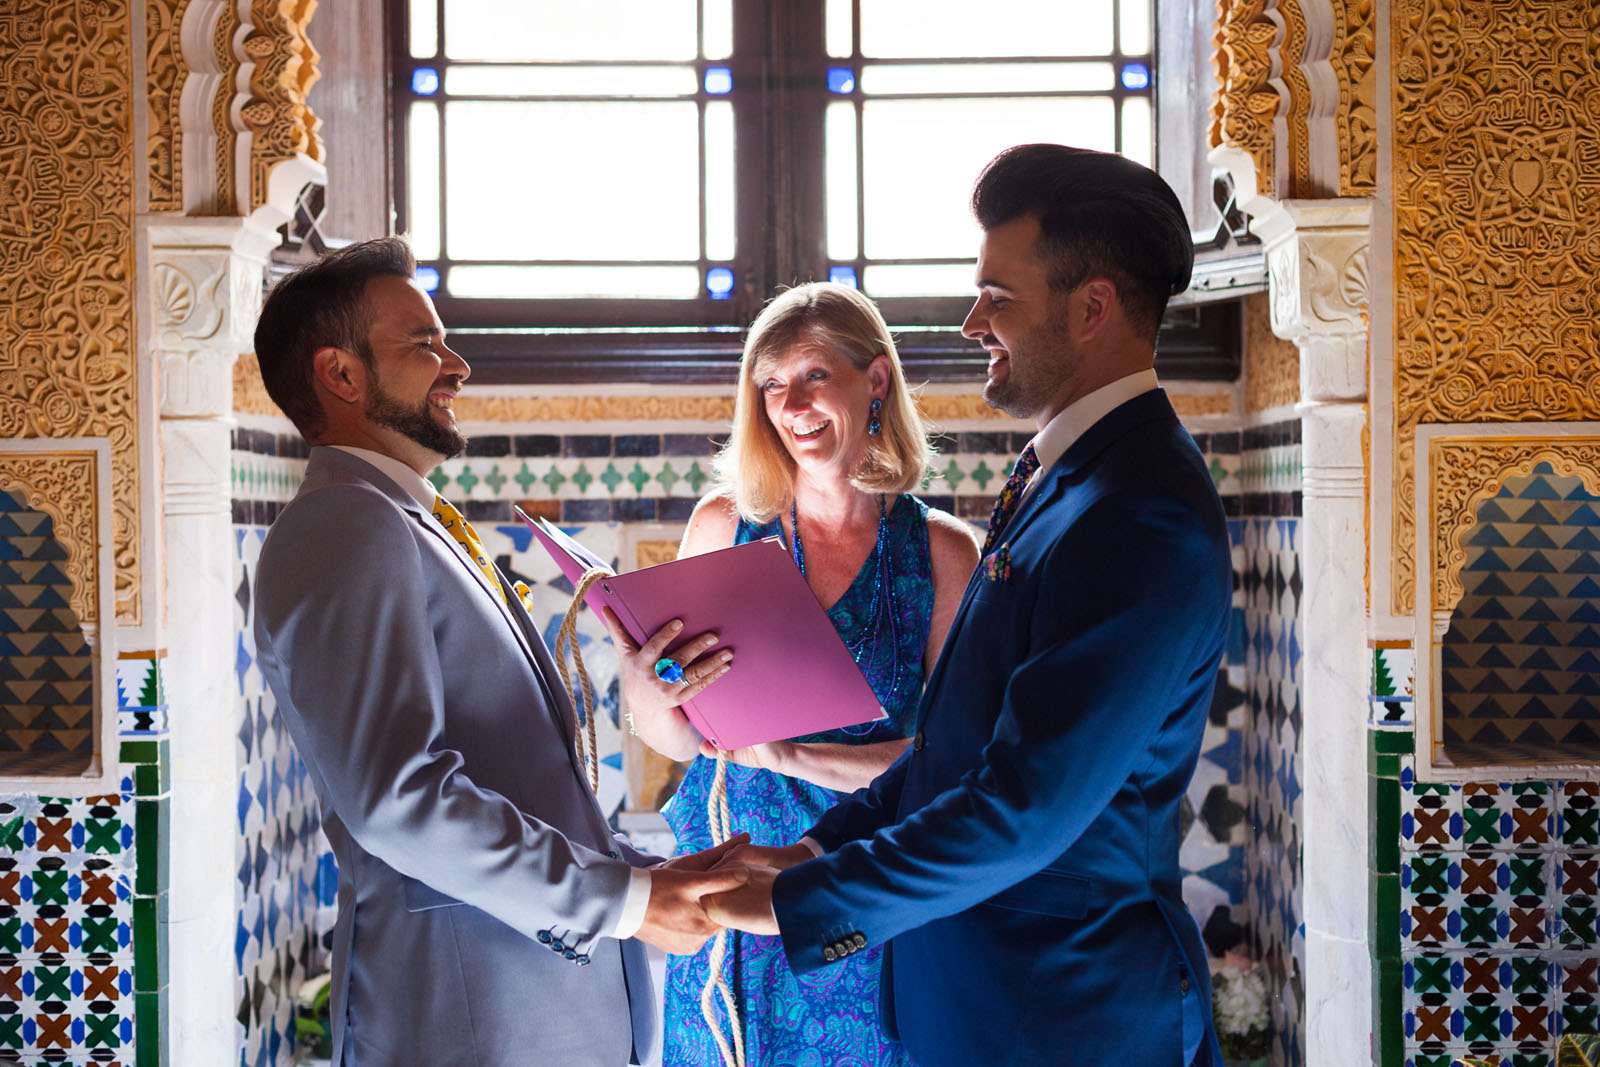 Elopement ceremony of two Spanish grooms officiated by Celebrant Spain